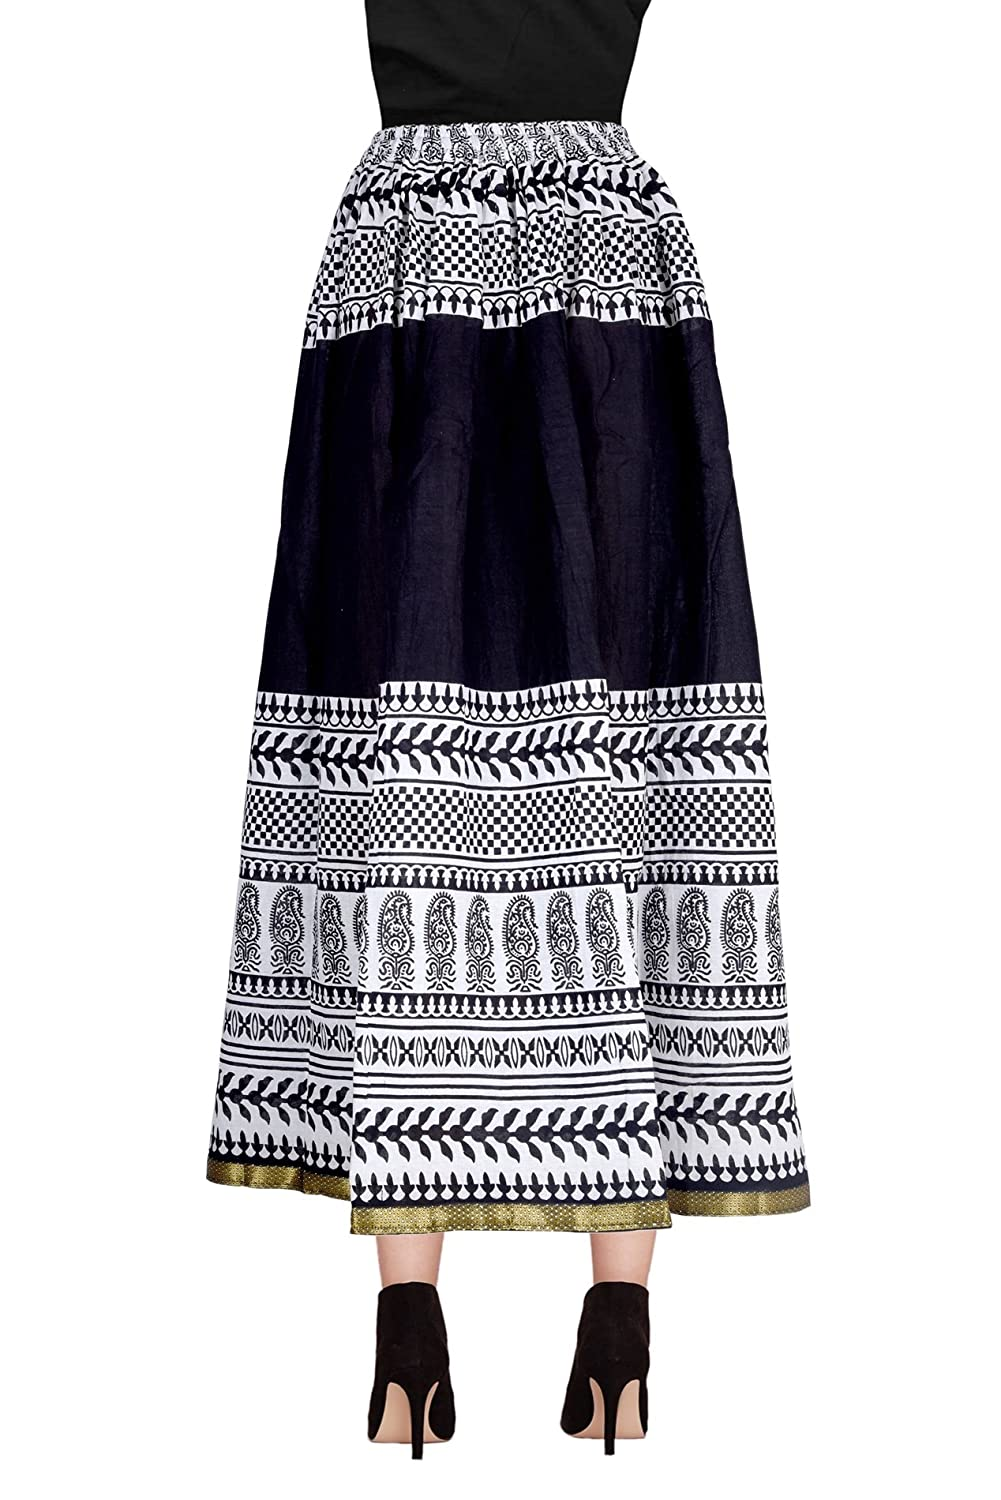 Grey Diligence India Cotton Long Skirt DL3034